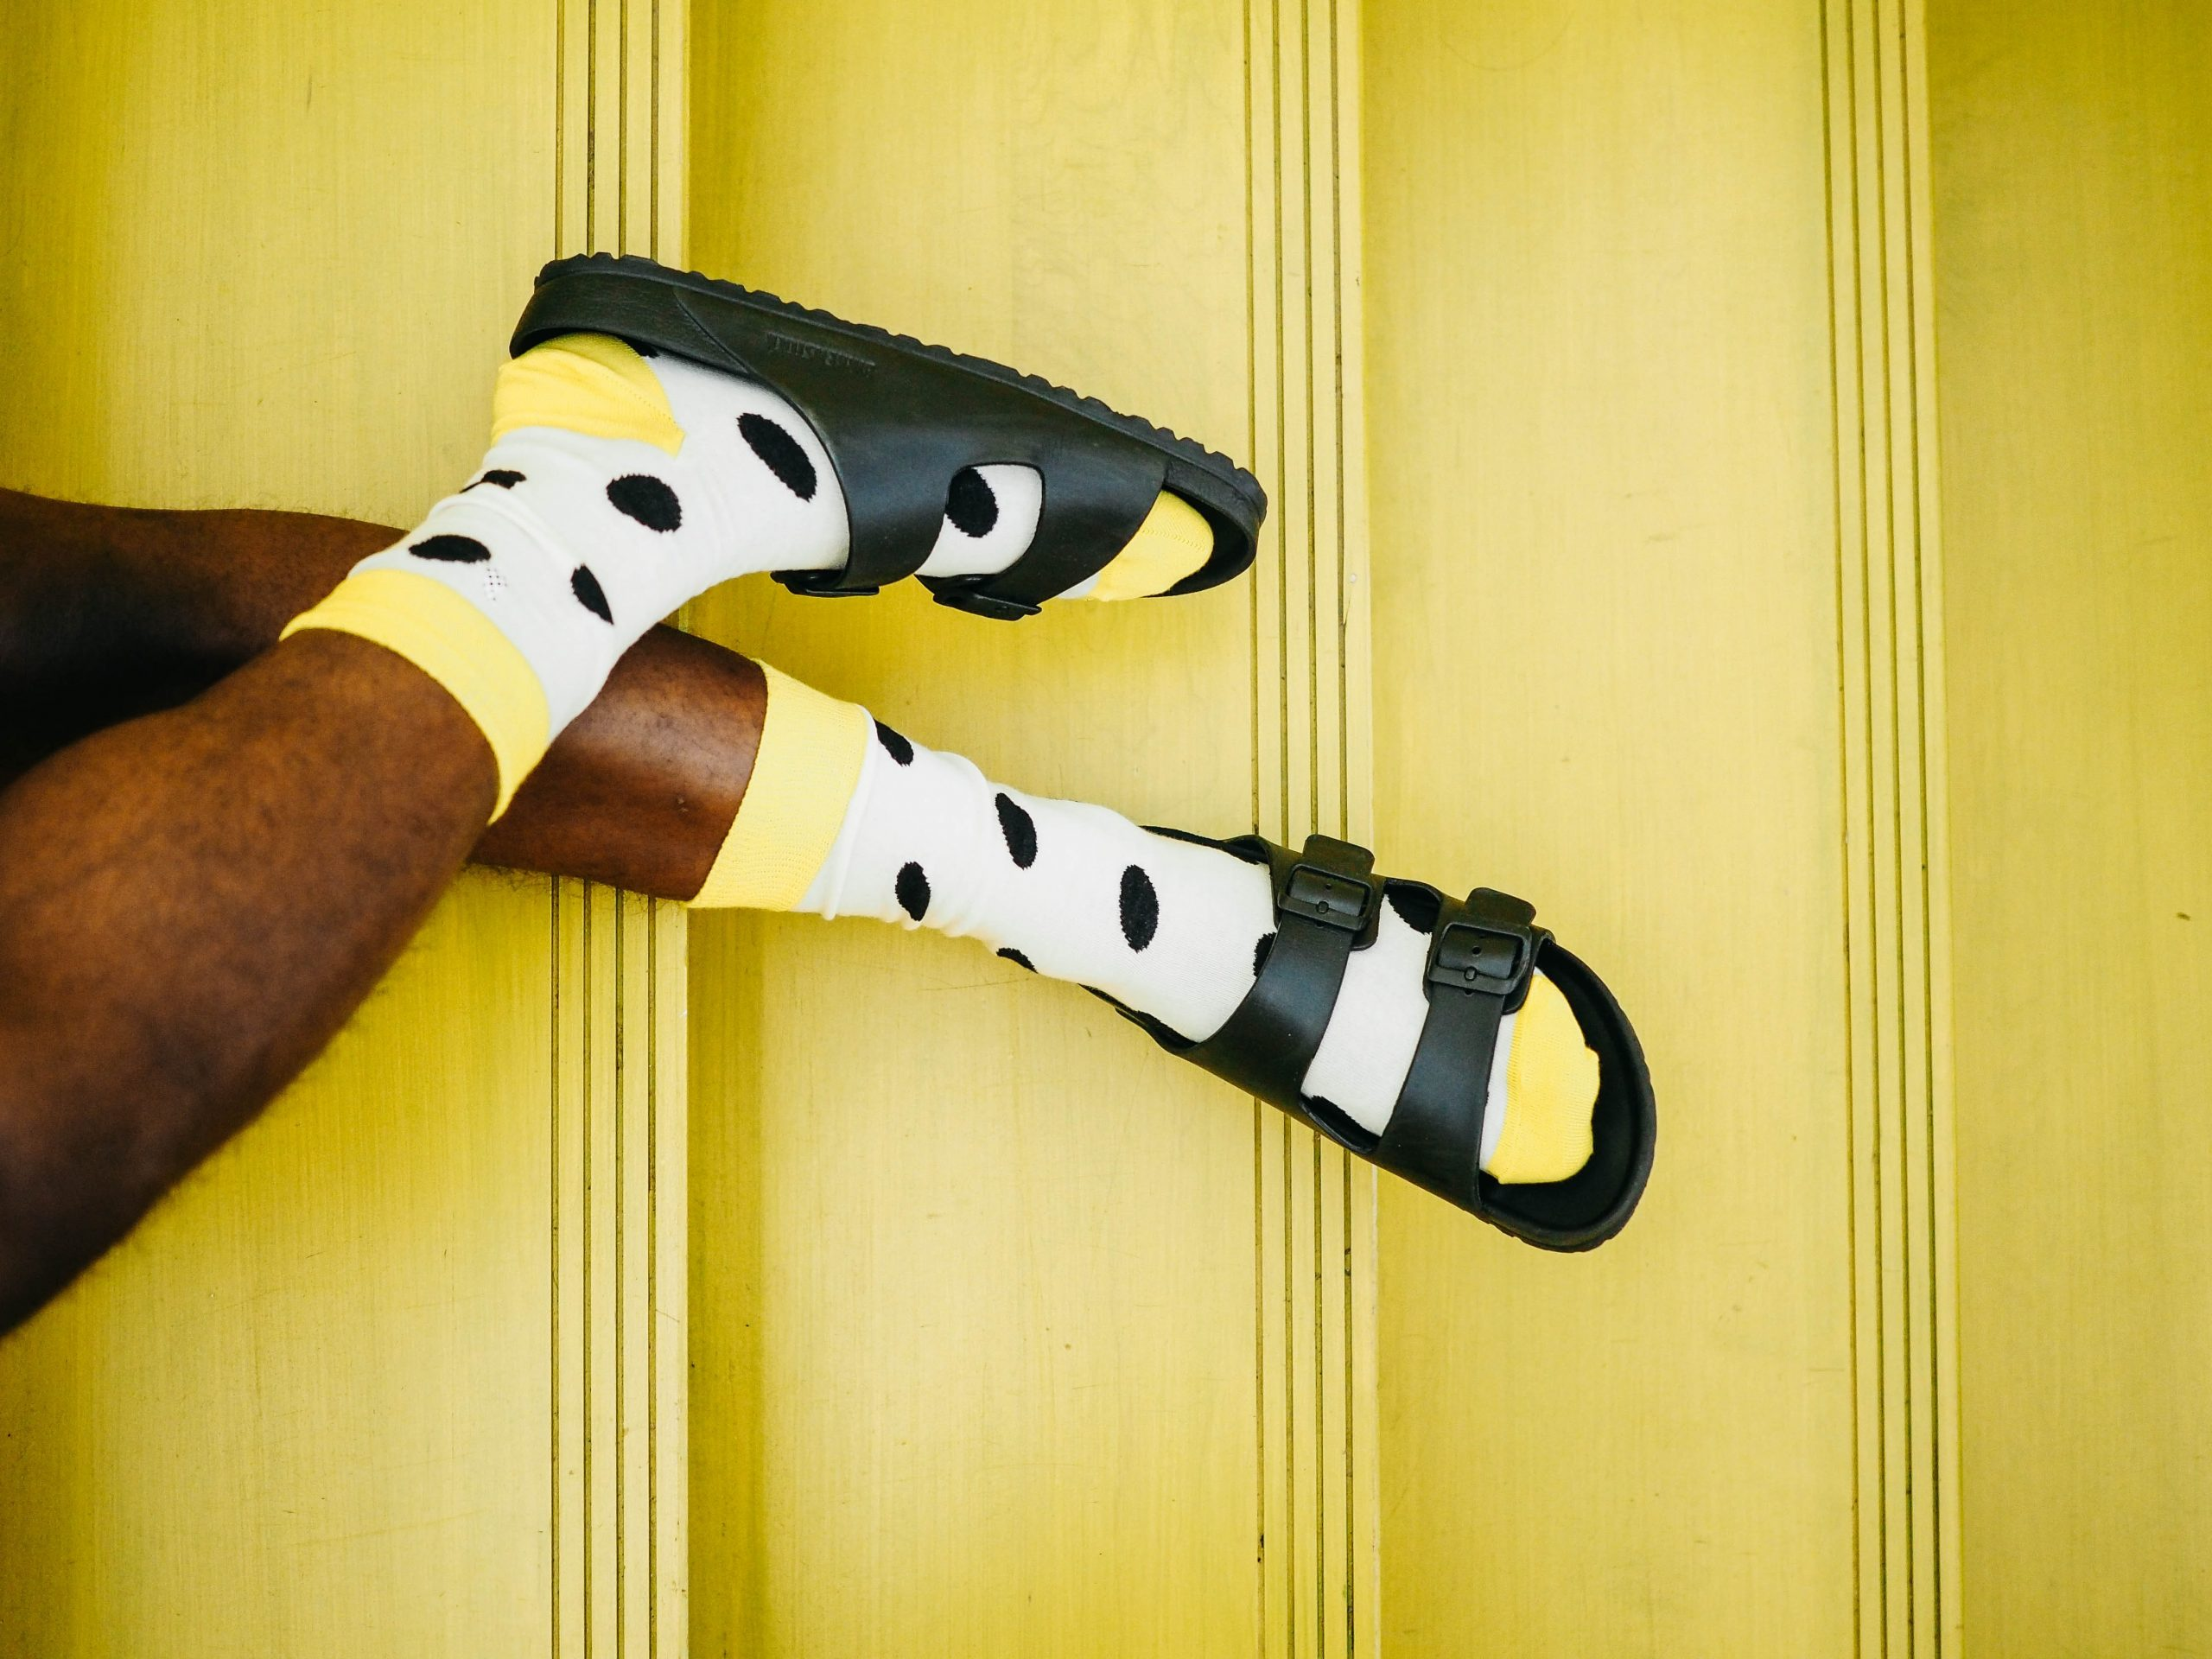 dark-skinned legs wearing white-and-yellow polka dot socks with black slides against a yellow background, casual fashion, casual outfits, casual clothes, casual wear